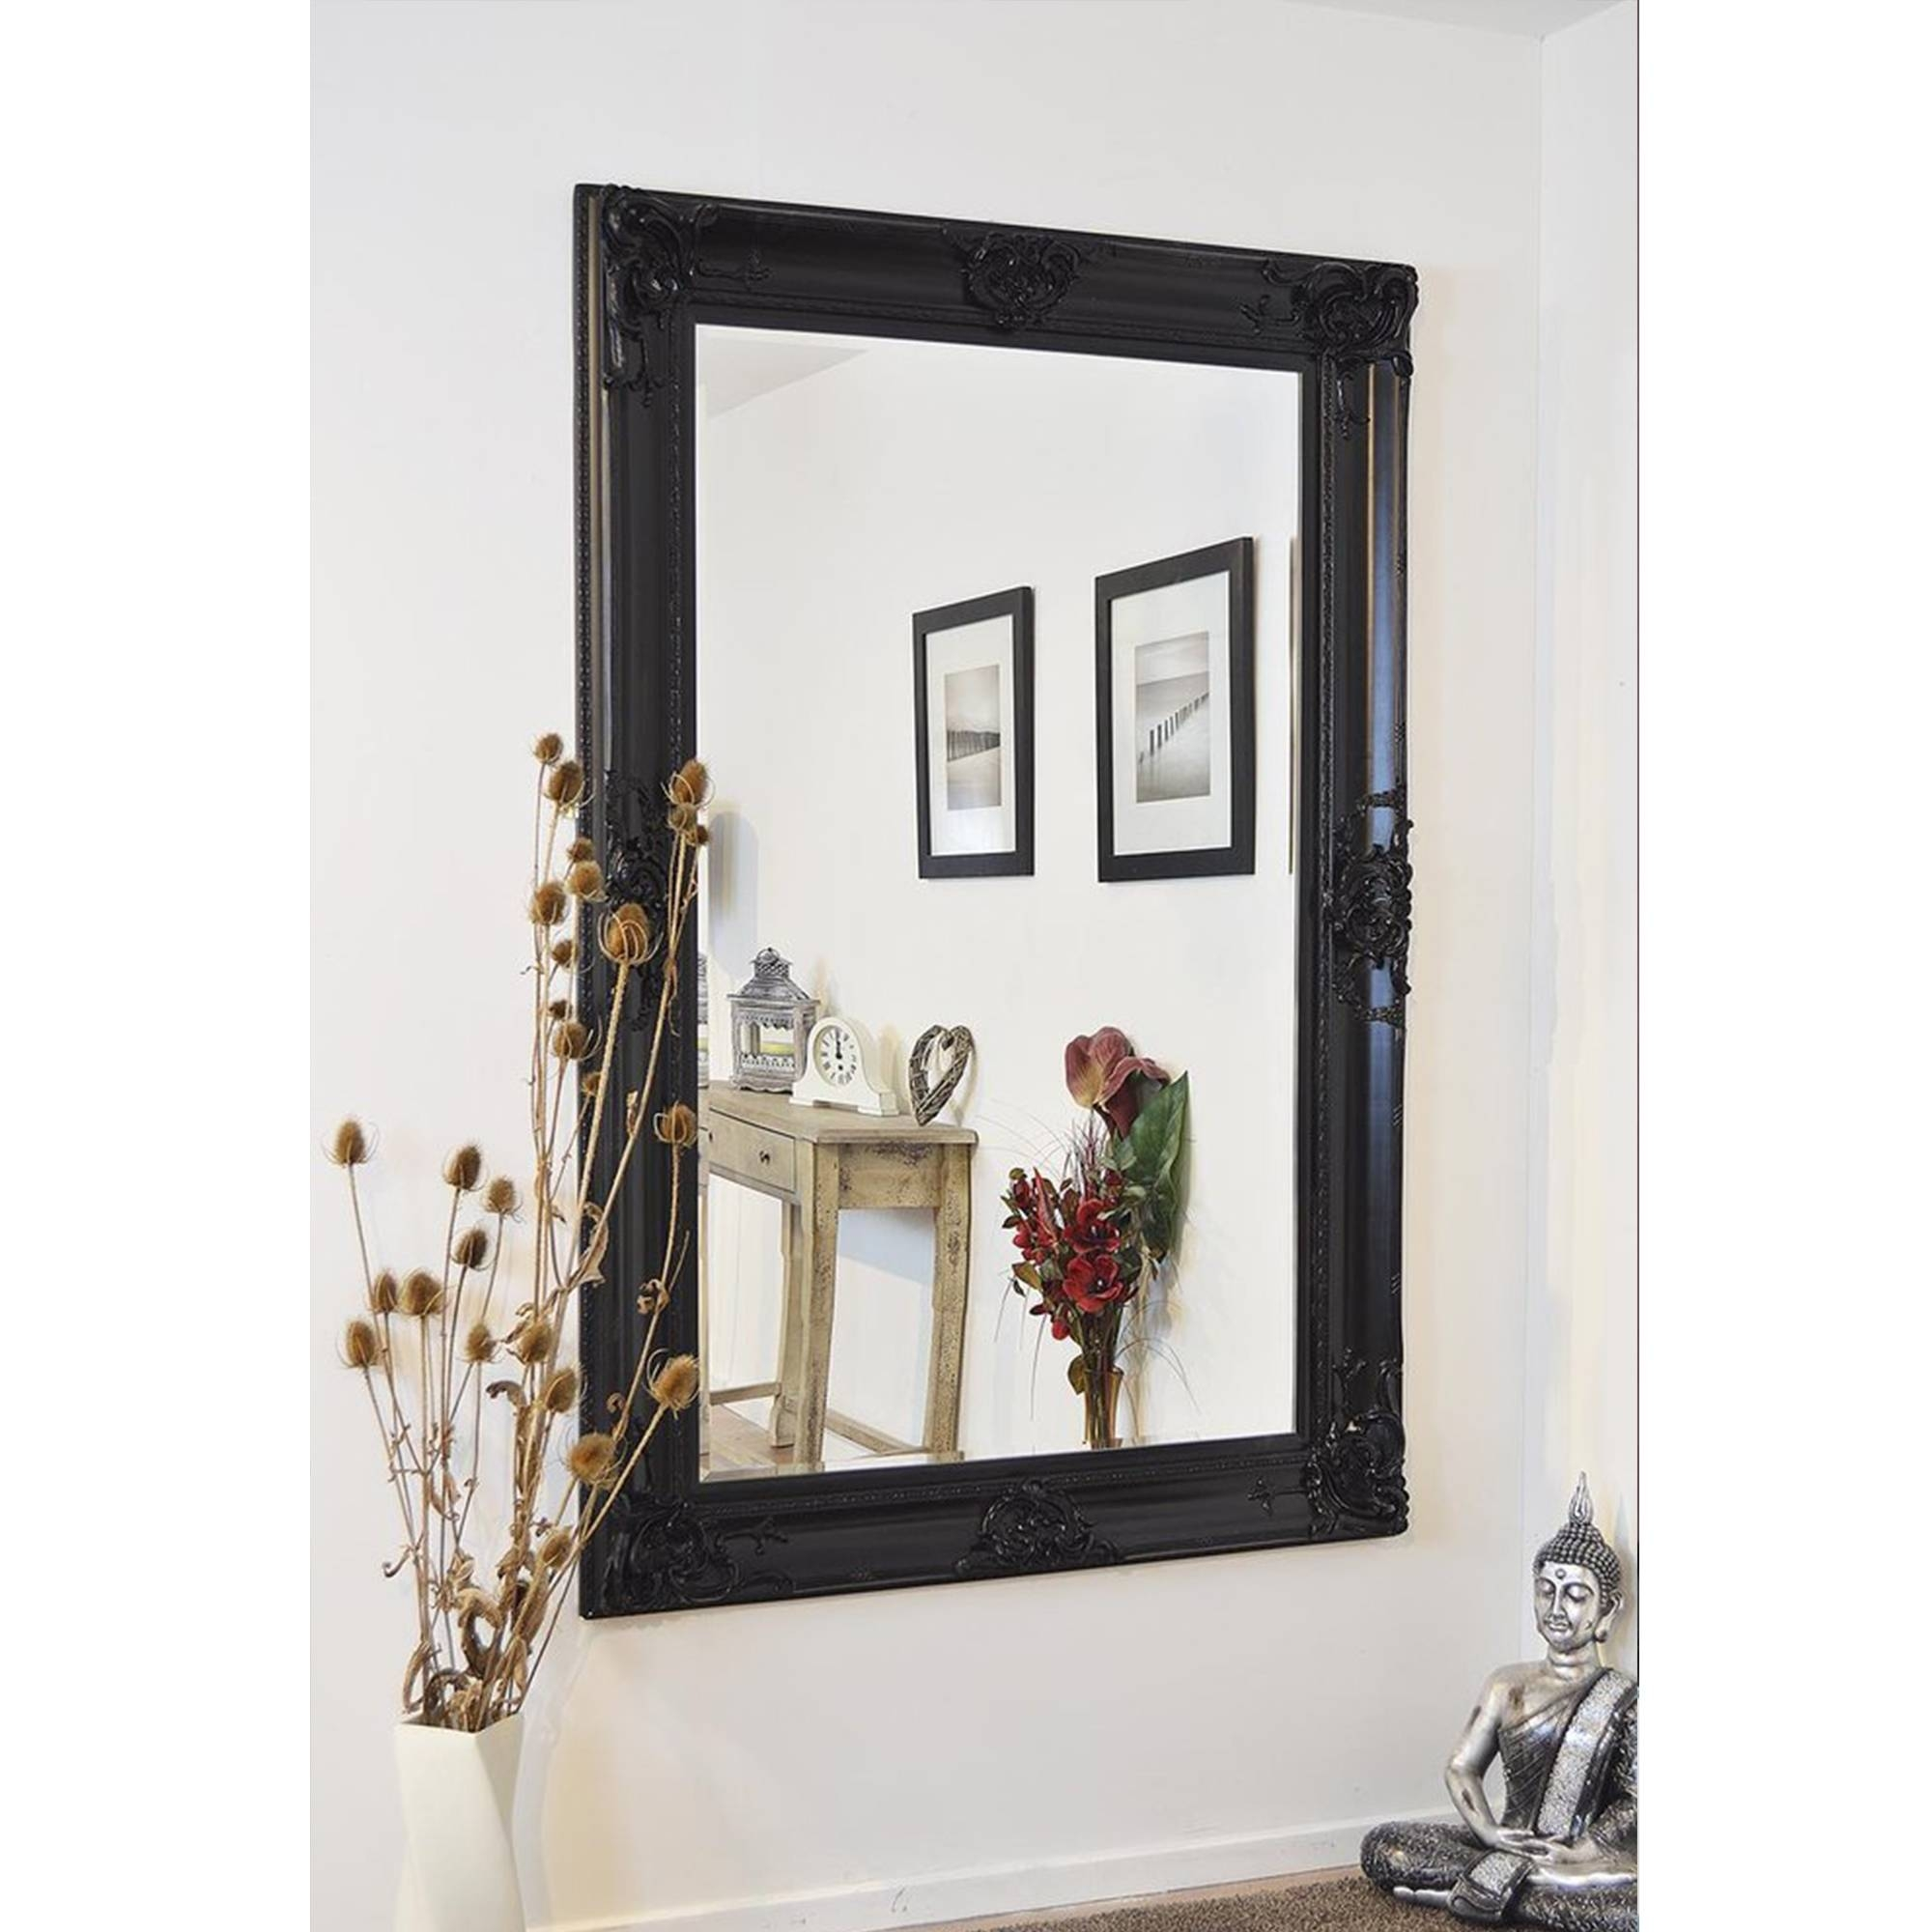 Uncategorized : Mirror Framed Wall Mirror Frameless Beveled Mirror intended for Fancy Wall Mirrors (Image 21 of 25)